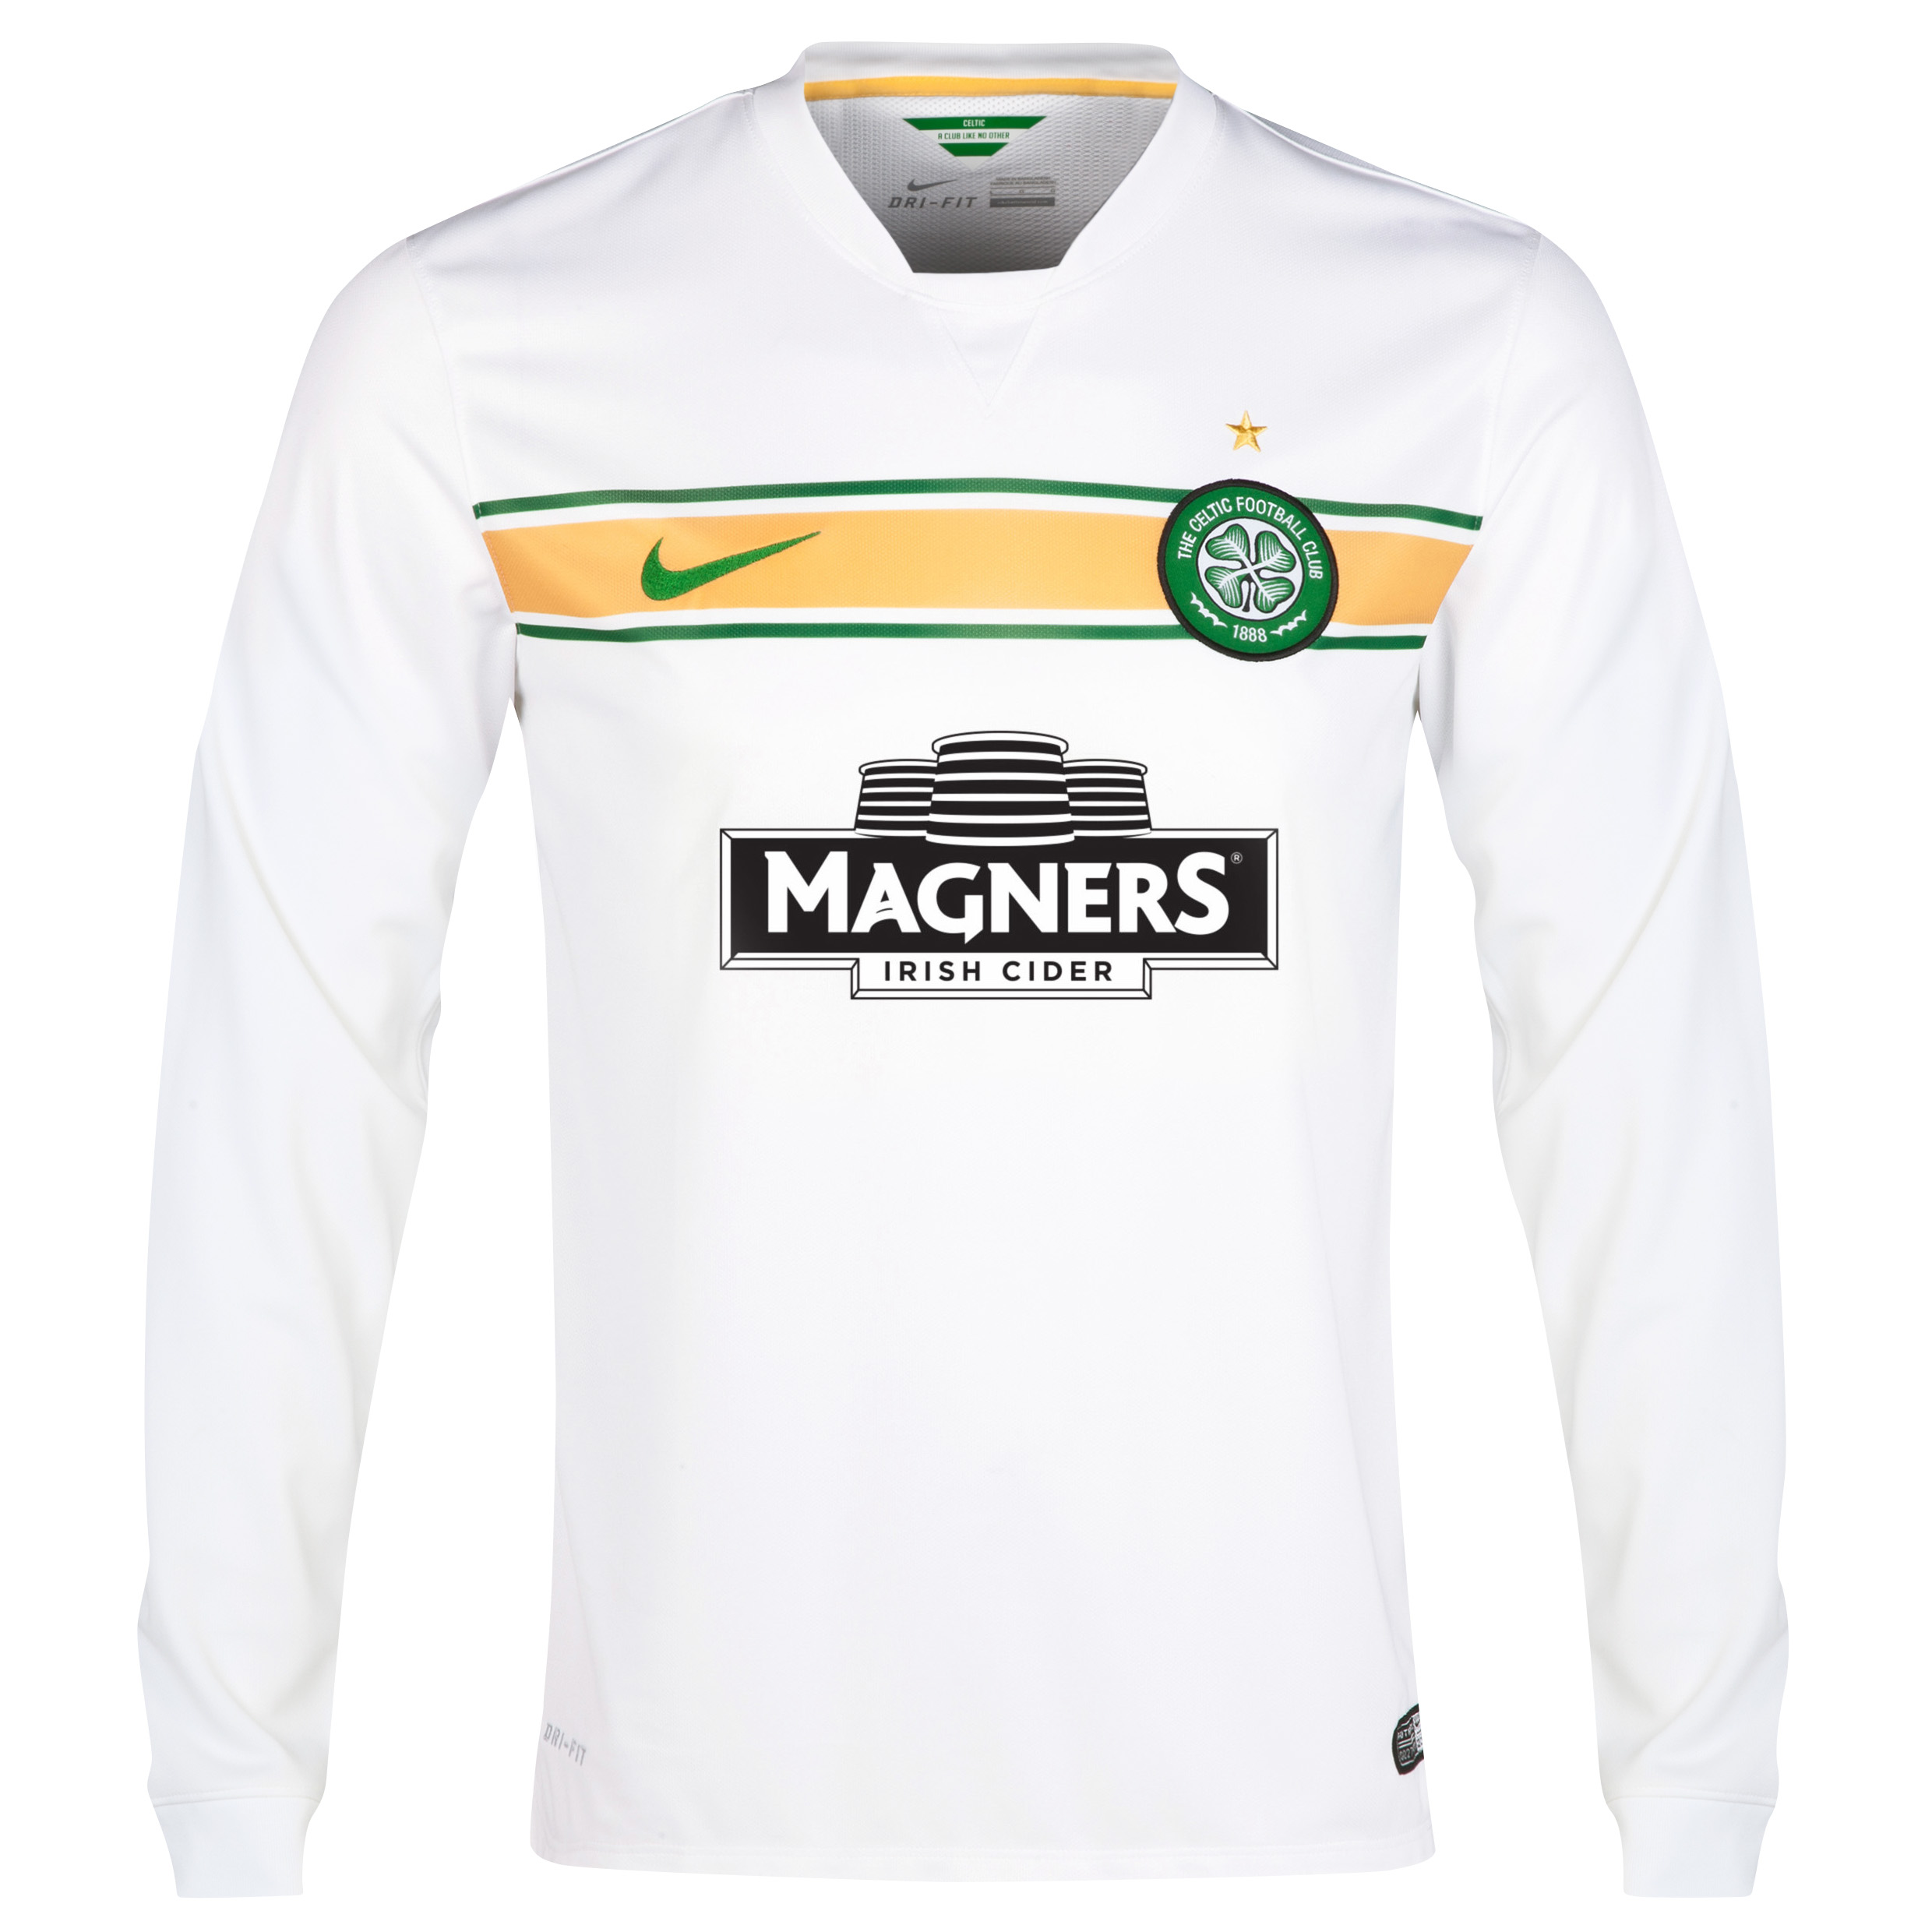 Celtic 3rd Shirt 2014/15 - Long Sleeved - With Sponsor White